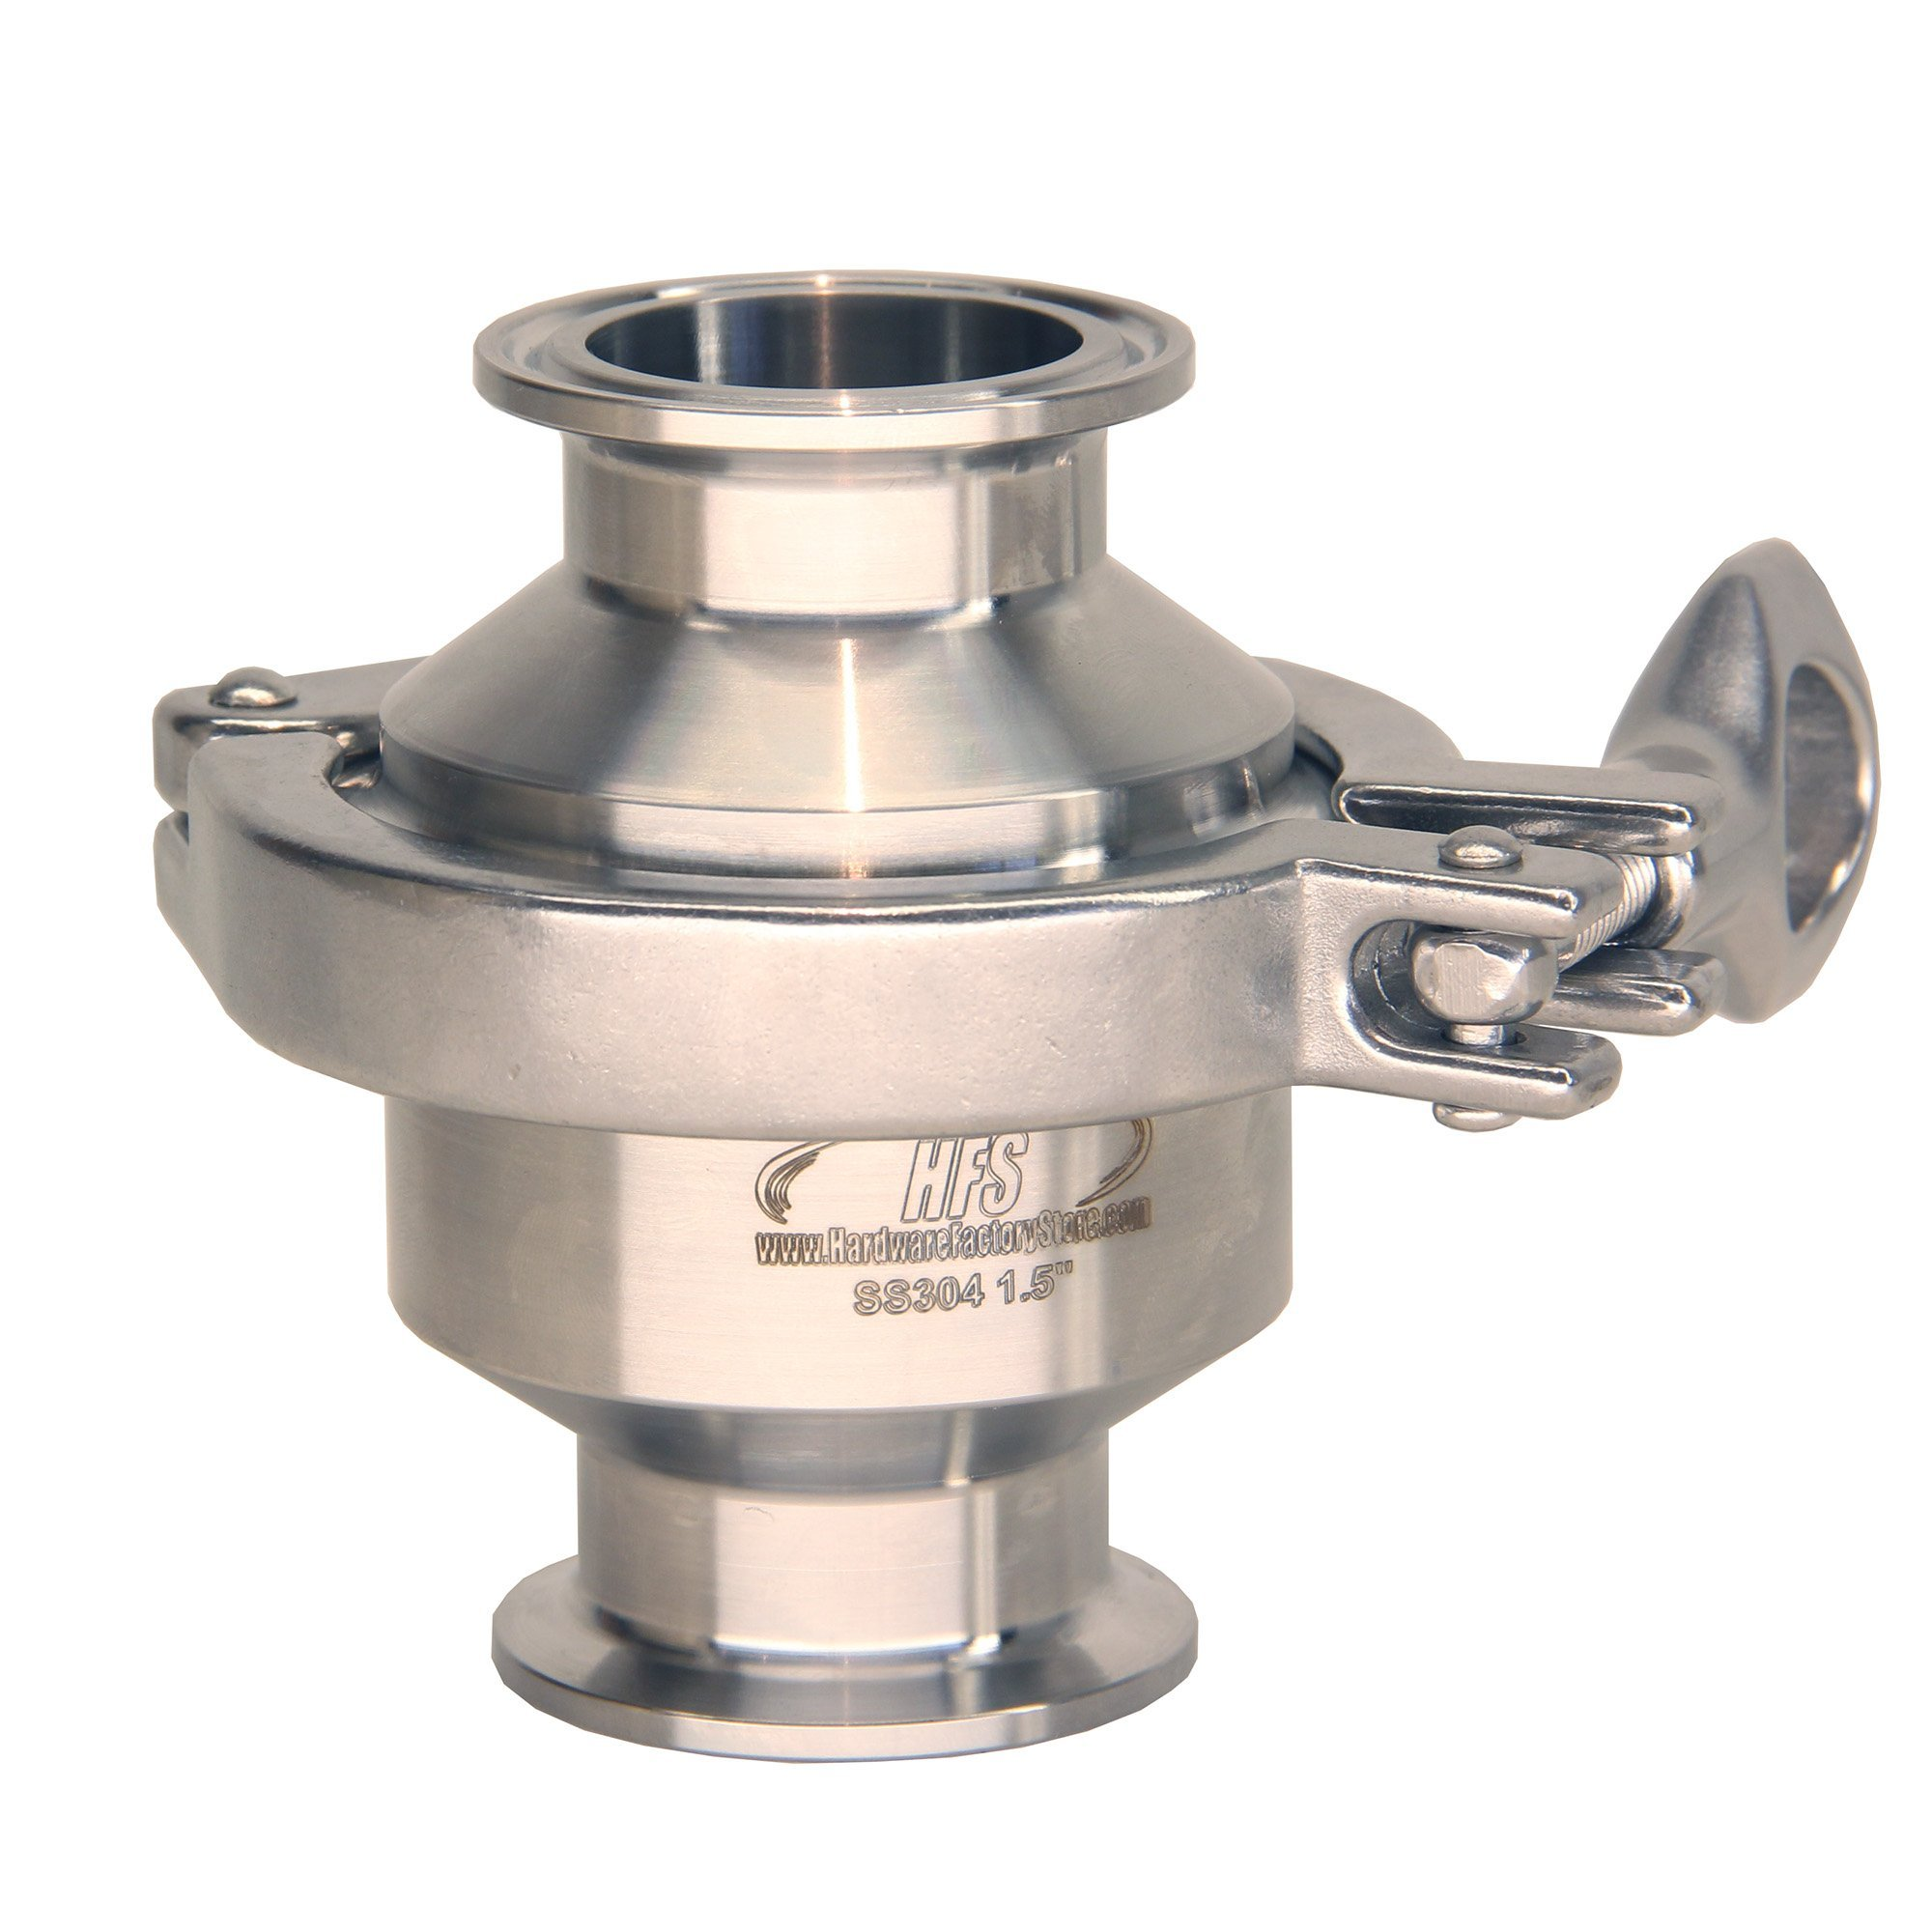 HFS (R) Sanitary Check Valve - One Way Flow - Tri Clamp Clover Stainless Steel (1.5IN)